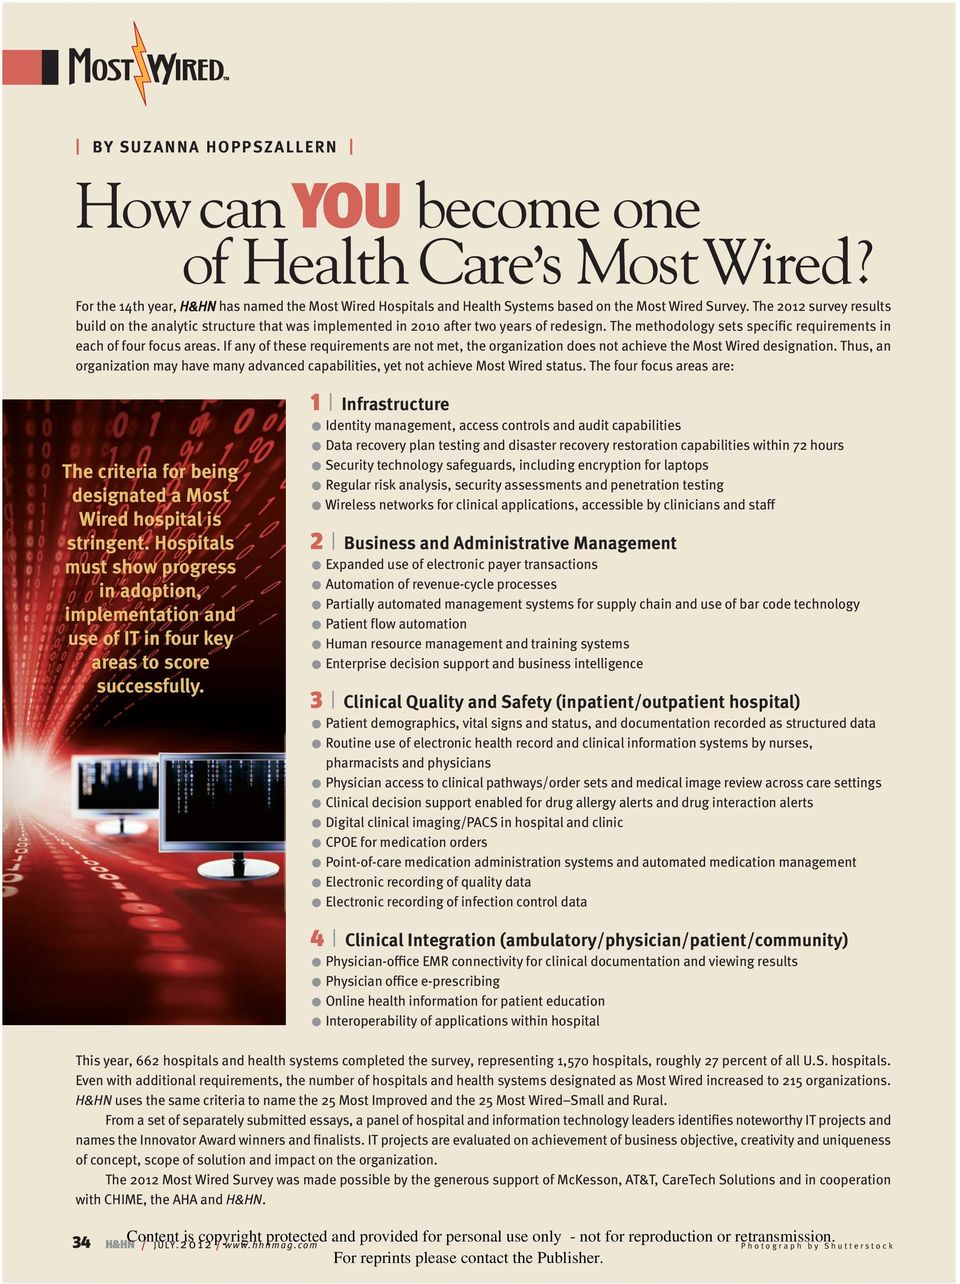 If any of these requirements are not met, the organization does not achieve the Most Wired designation. Thus, an organization may have many advanced capabilities, yet not achieve Most Wired status.